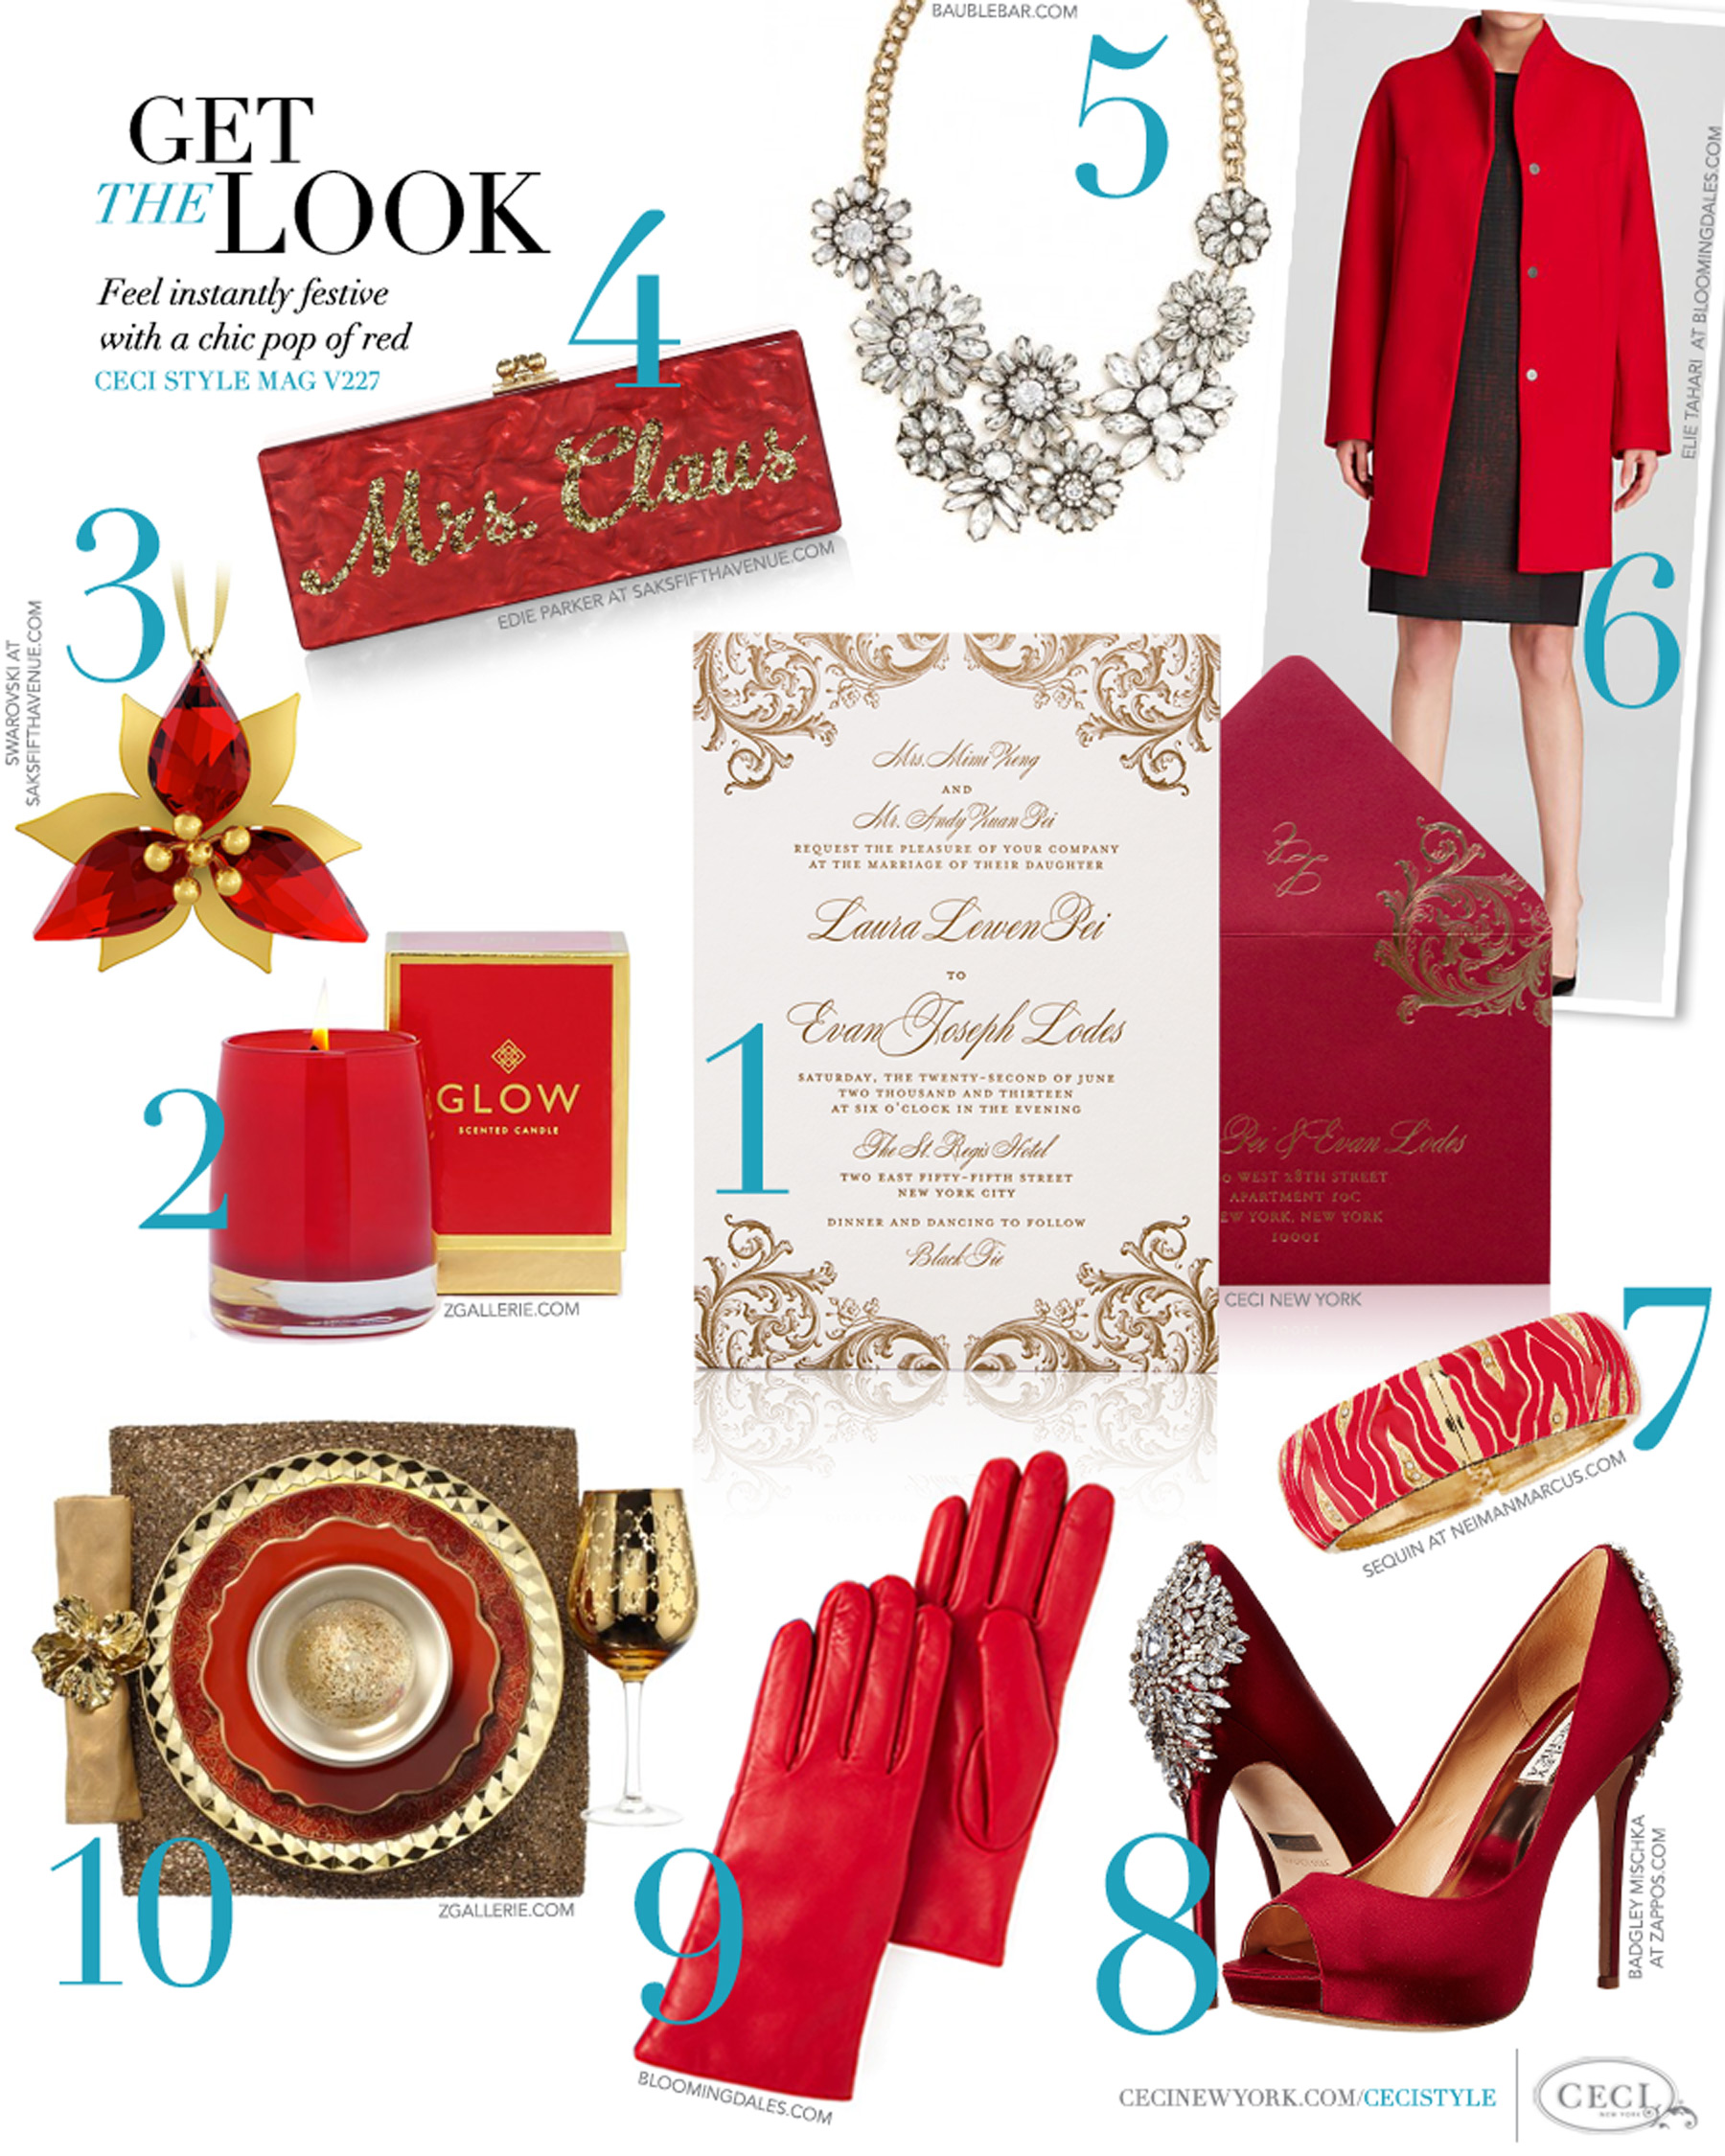 V227: Get the Look - The Red Issue — Ceci Style